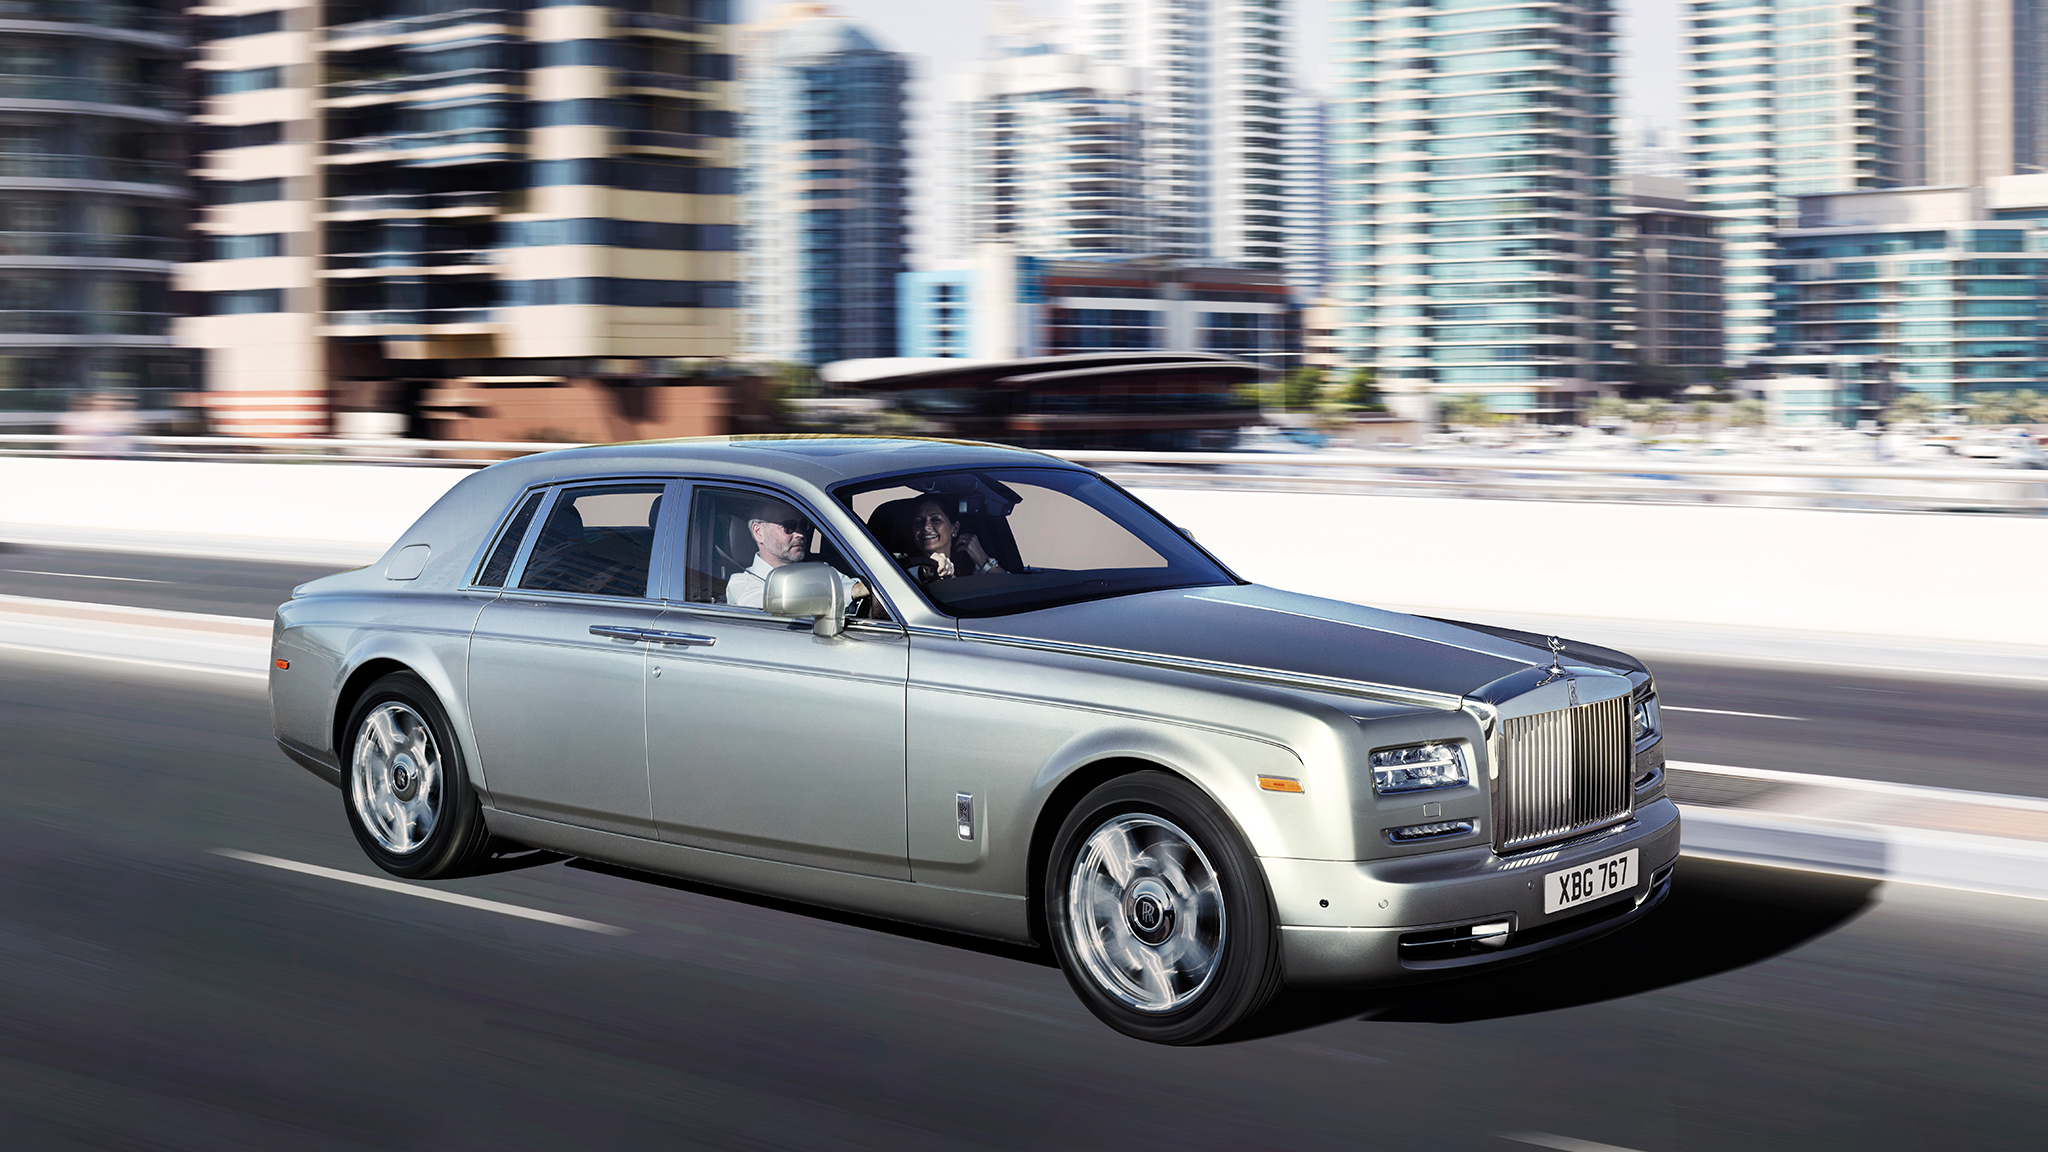 Rolls royce Phantom #21